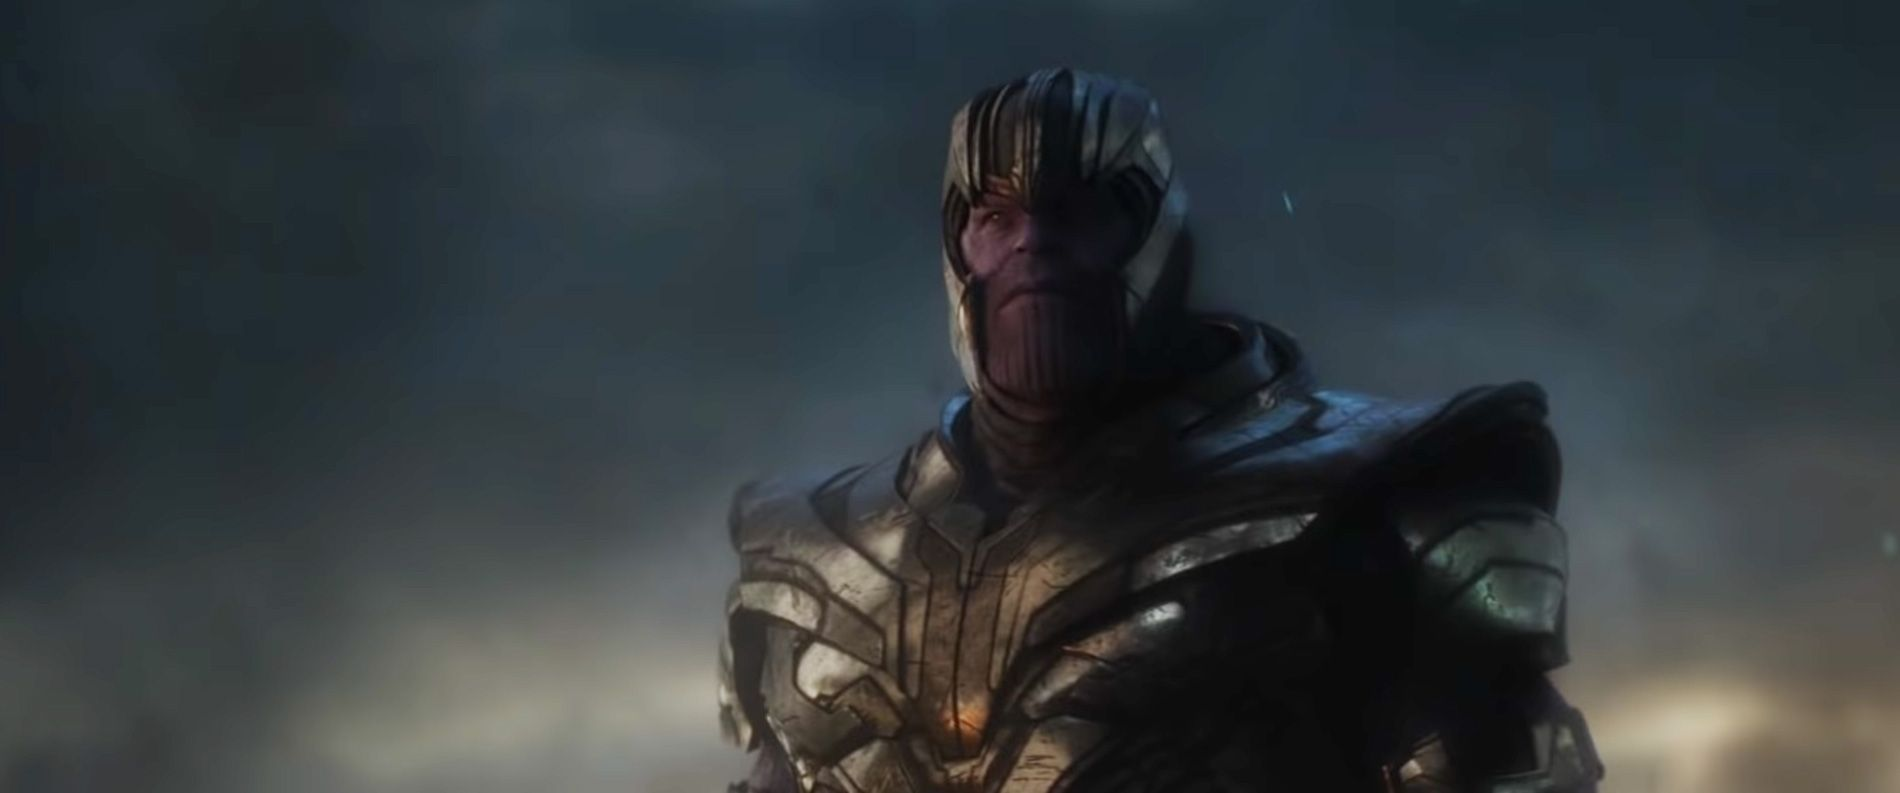 New Avengers Endgame Teaser Trailer 7 Things You Missed In The